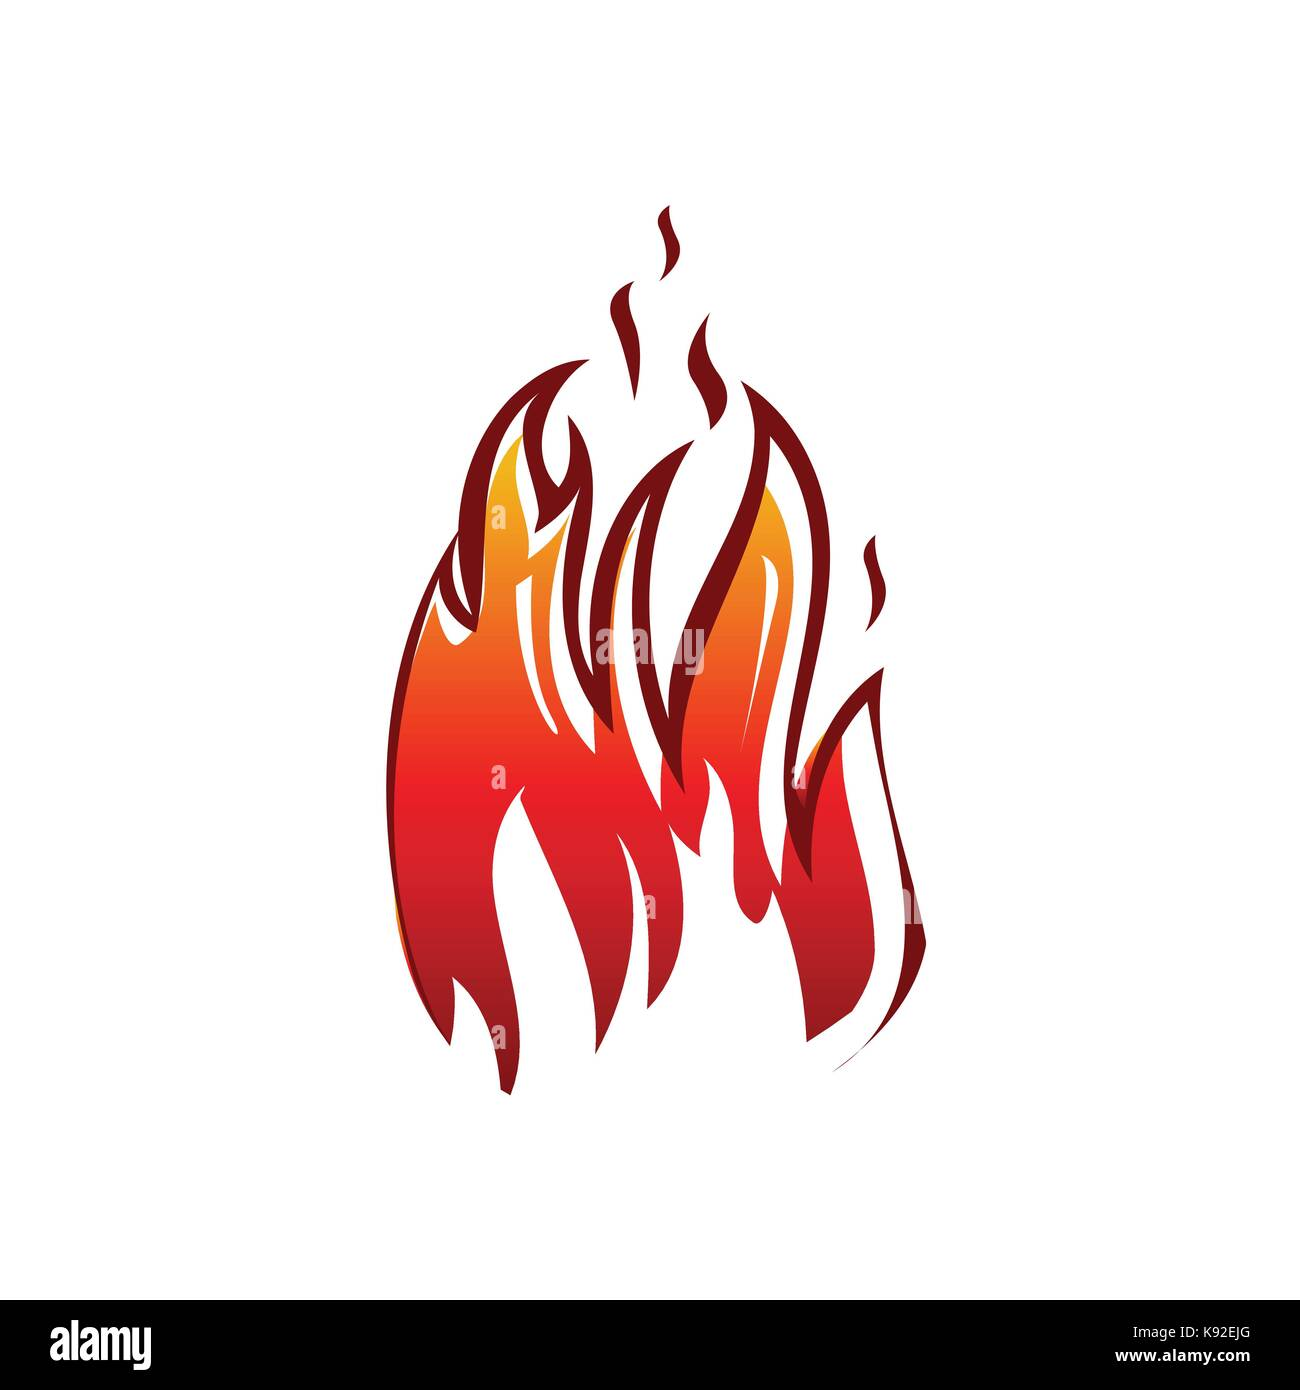 bold flame illustration, flame icon, symbol design, isolated on white background. - Stock Vector